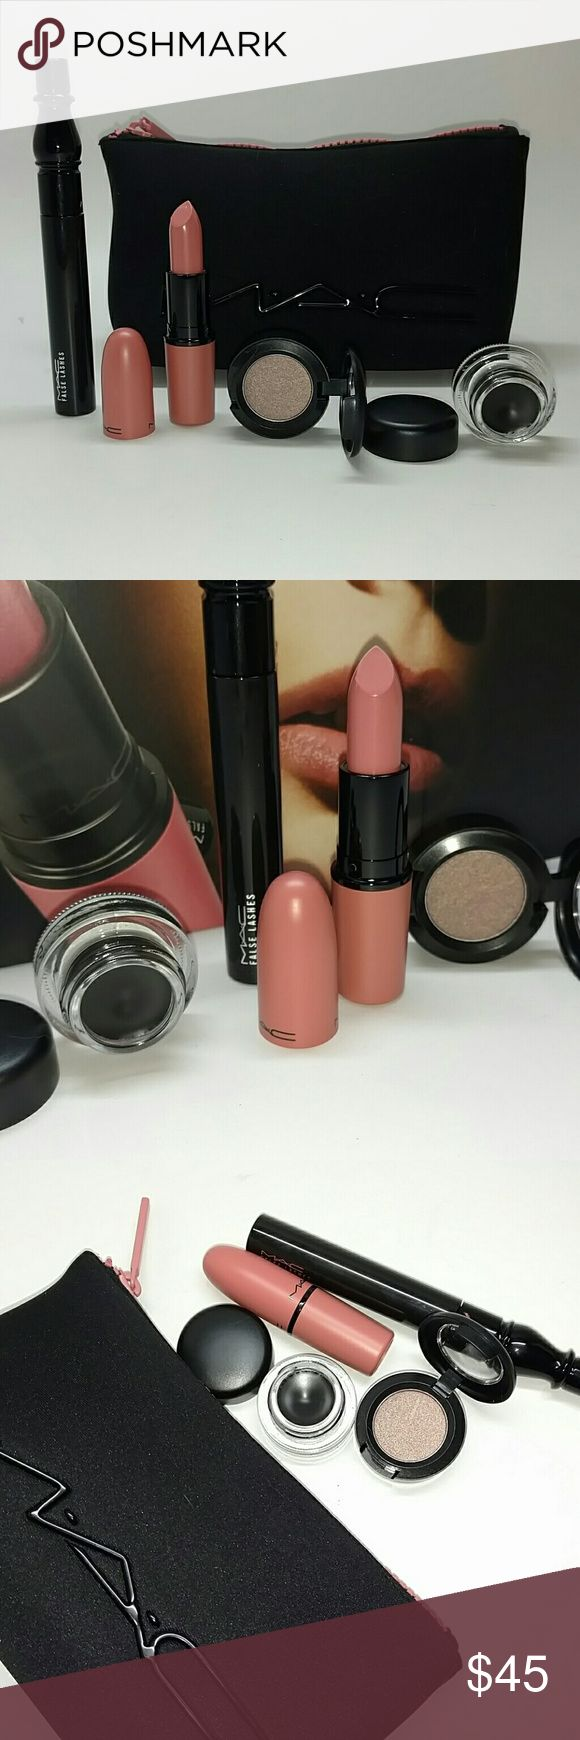 MAC ~ gift set~ Final markdown Brand New MAC subleased gift set with box includes Full-size Eyeshadow in Deception (0.05 oz.) Full-size Fluidline in Blacktrack (0.1 oz.) Full-size False Lashes Mascara (0.28 oz.) Full-size Lipstick in Sunblessed (cremesheen finish) (0.1 oz.) Cosmetics Bag All new unused MAC Cosmetics Makeup